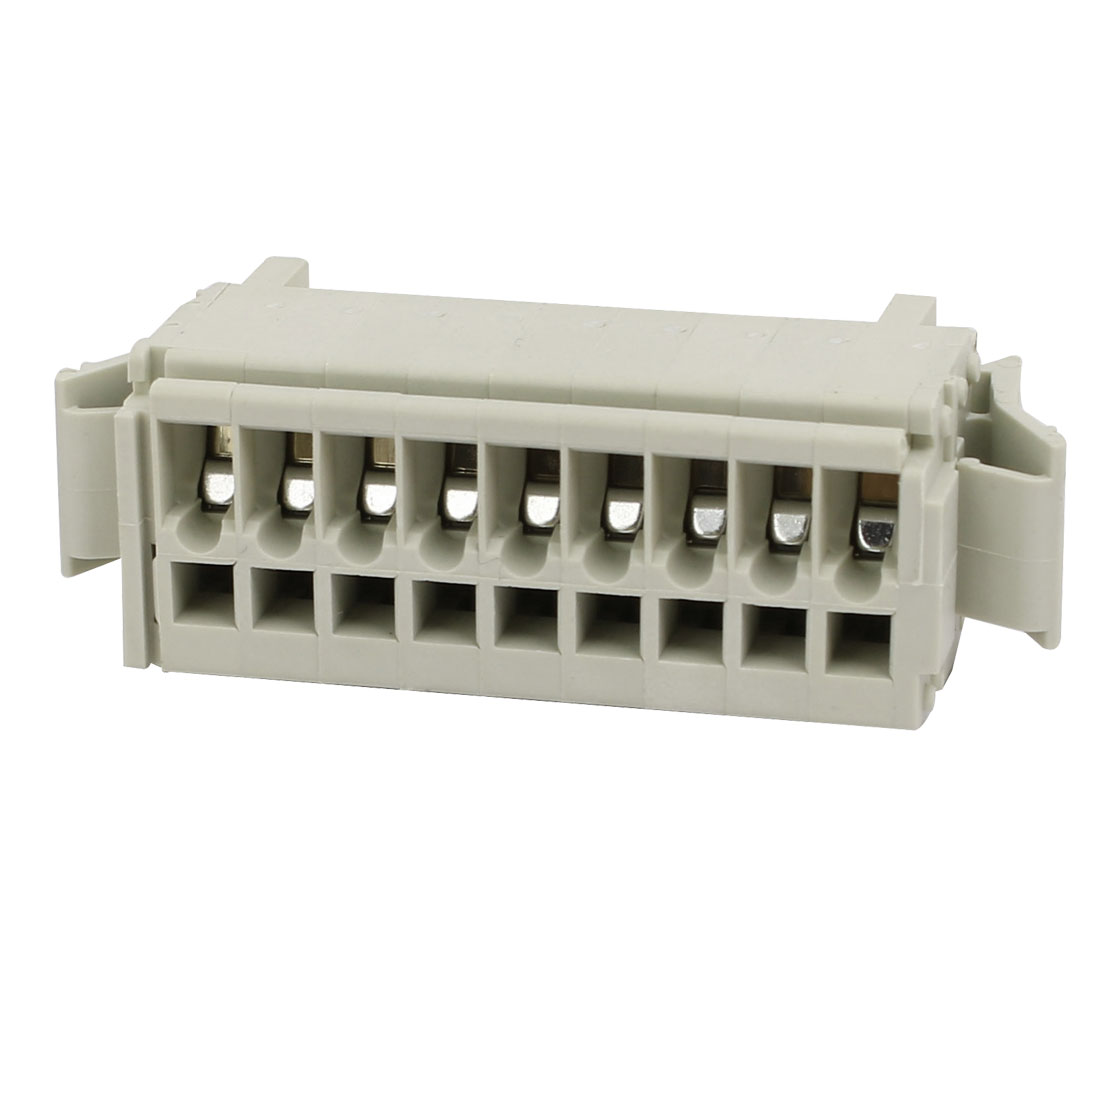 9 Pole 5mm Pitch PCB Screw Terminal Block Connector Gray